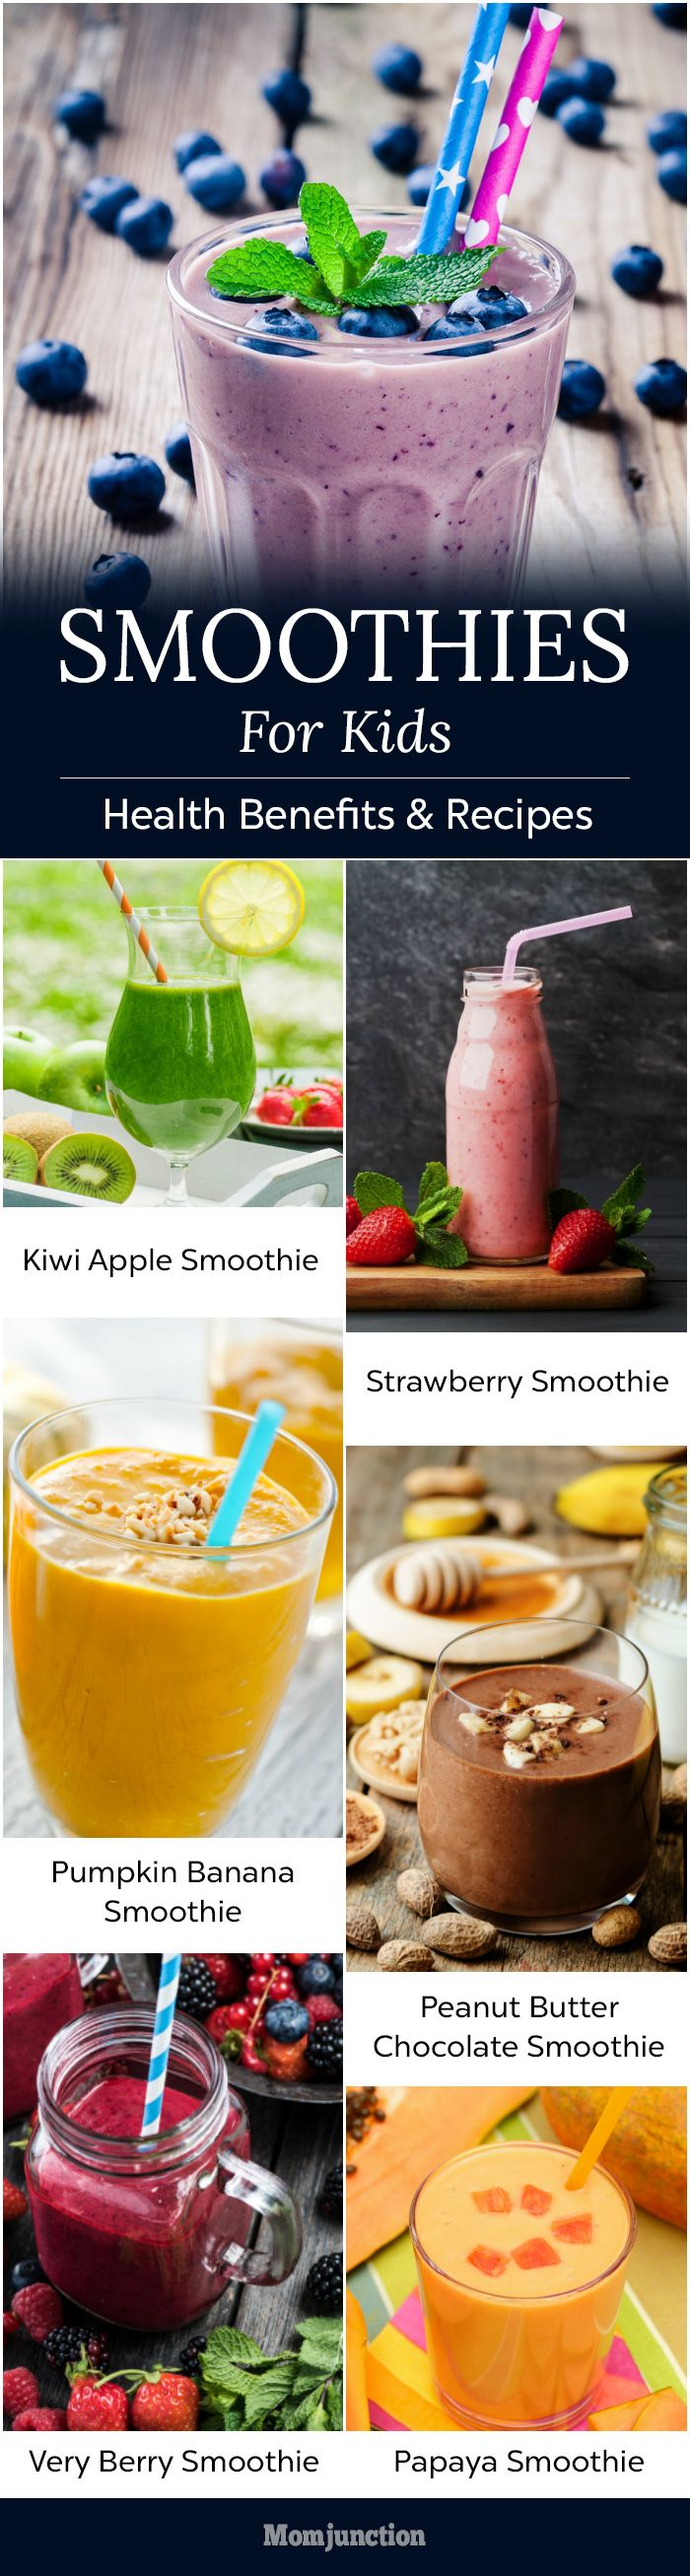 Smoothies For Kids – Health Benefits And Recipes